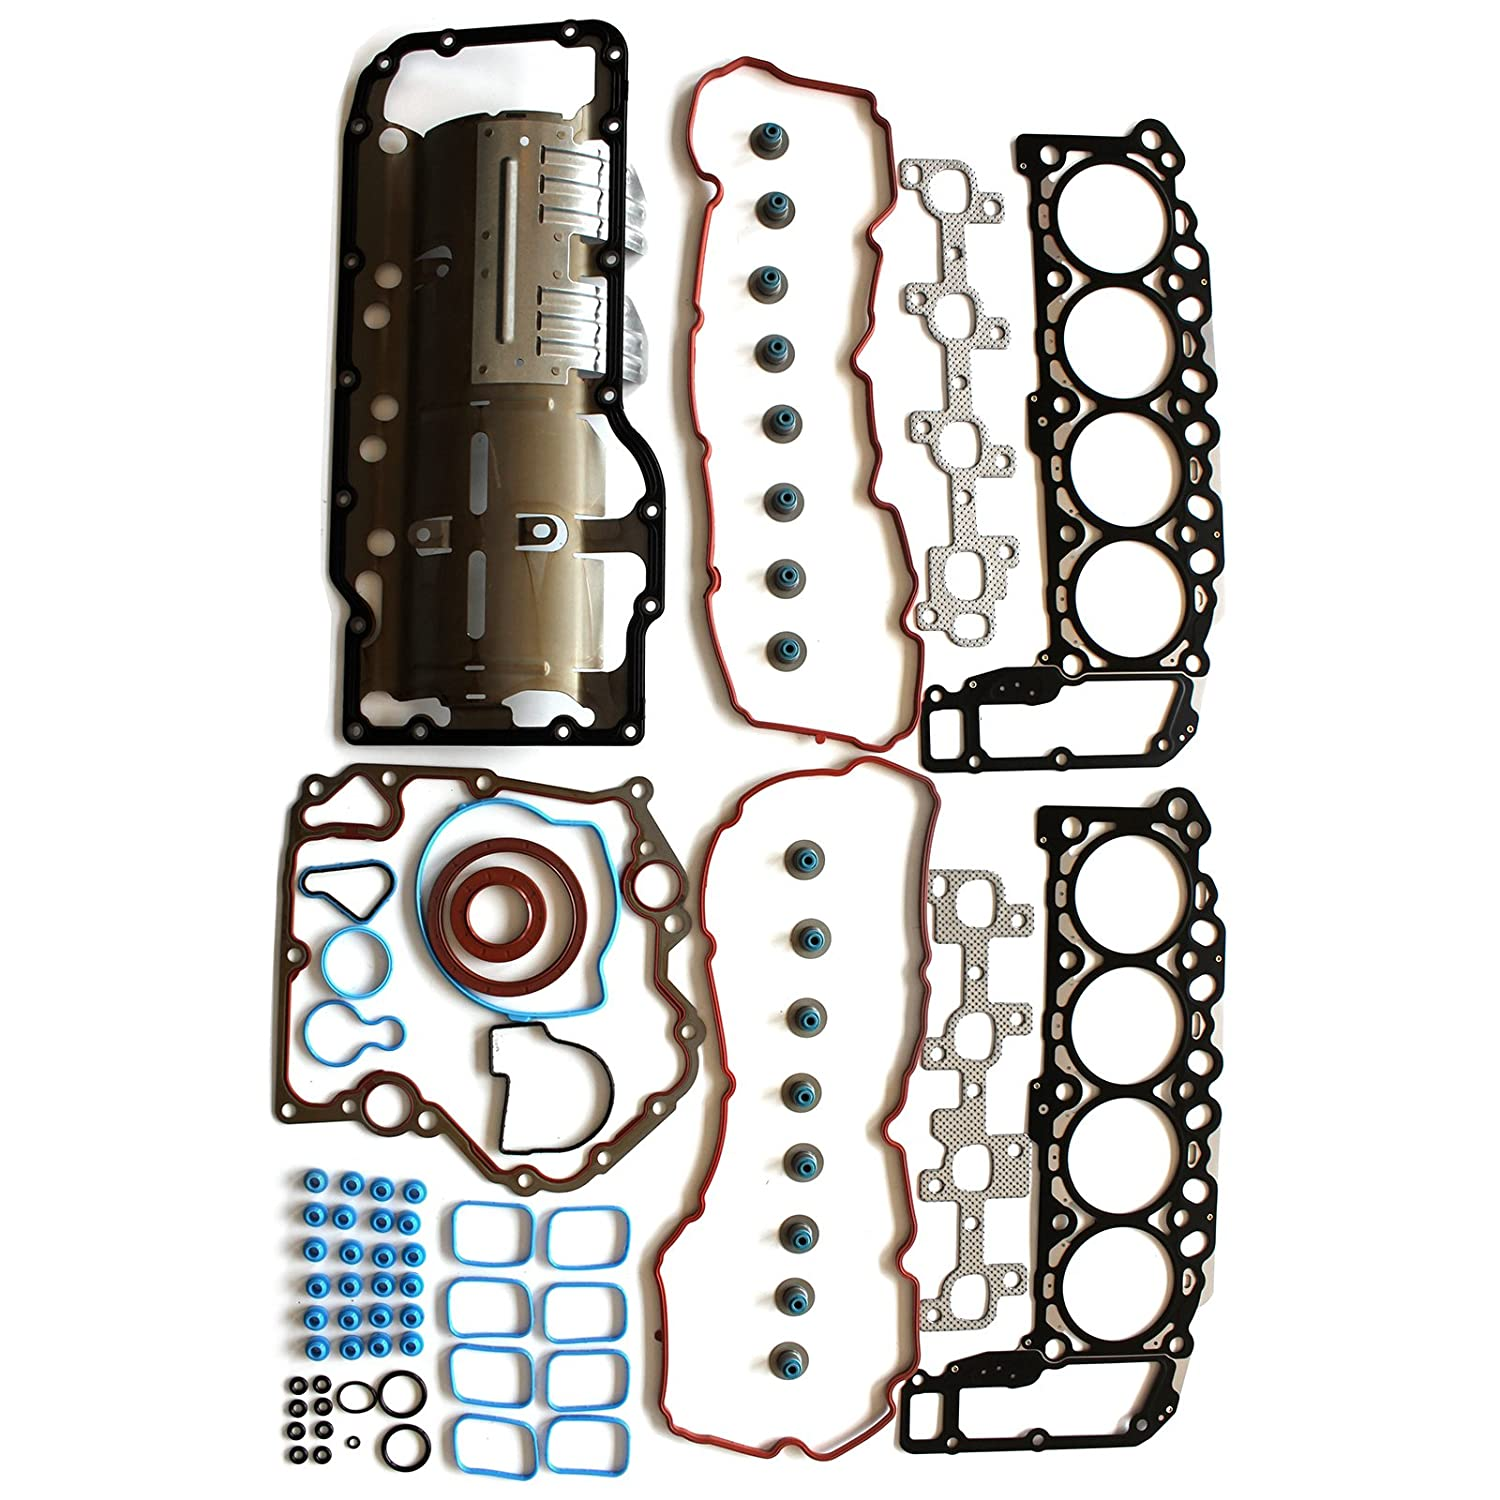 SCITOO New Head Gasket Set Replacement for Chrysler Aspen